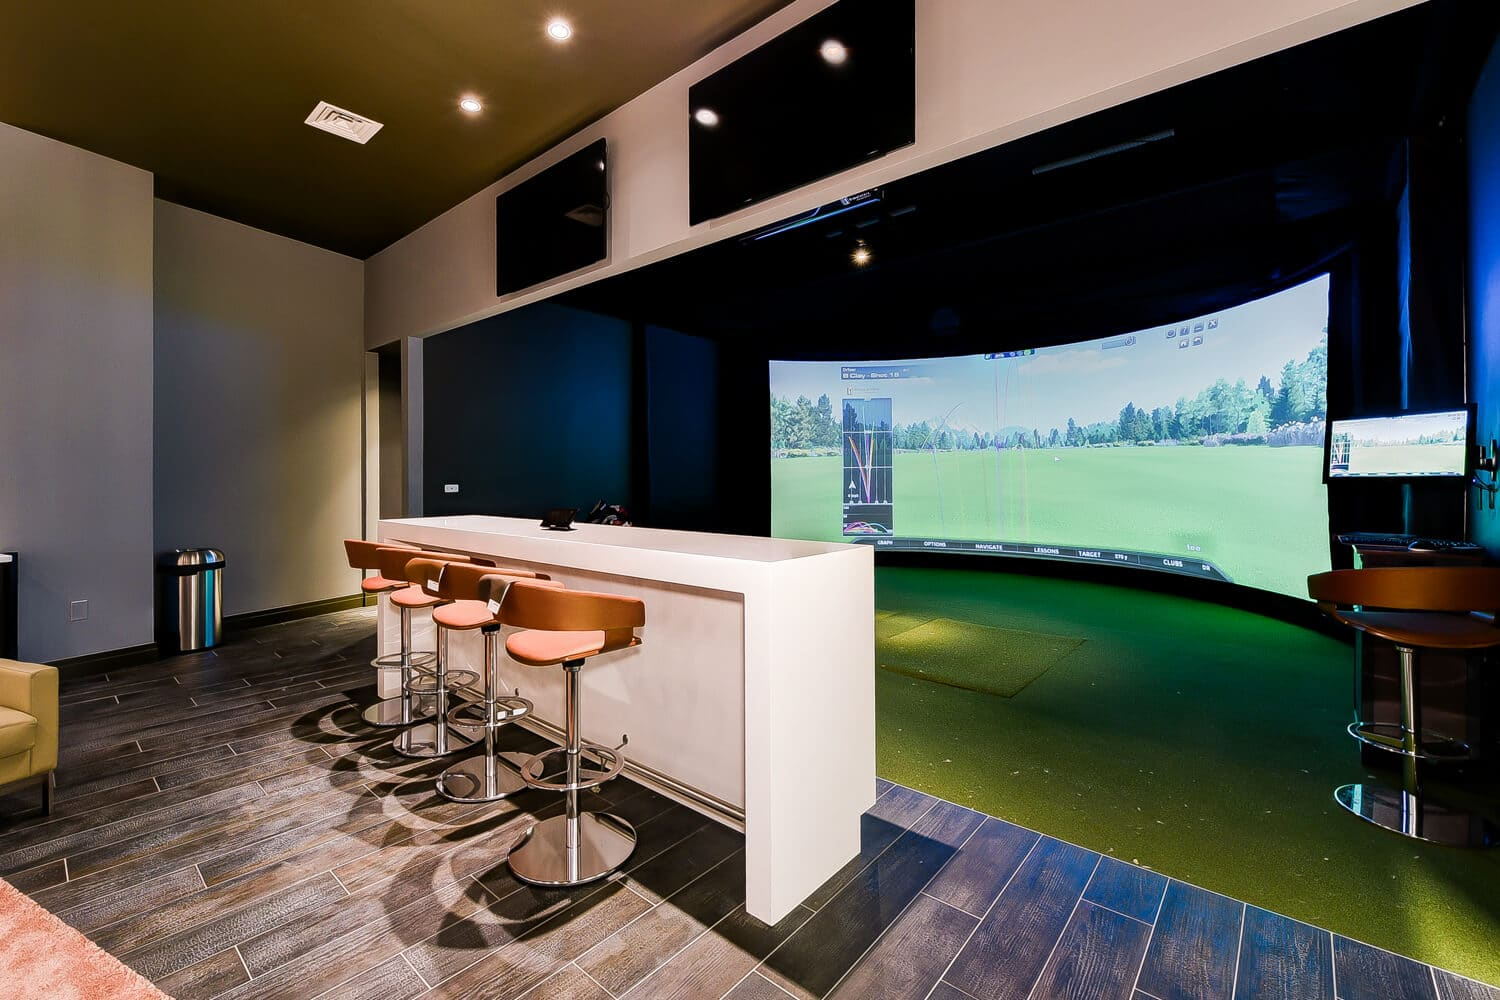 Golf-Simulator-Fun-Games-Four-The-Collective